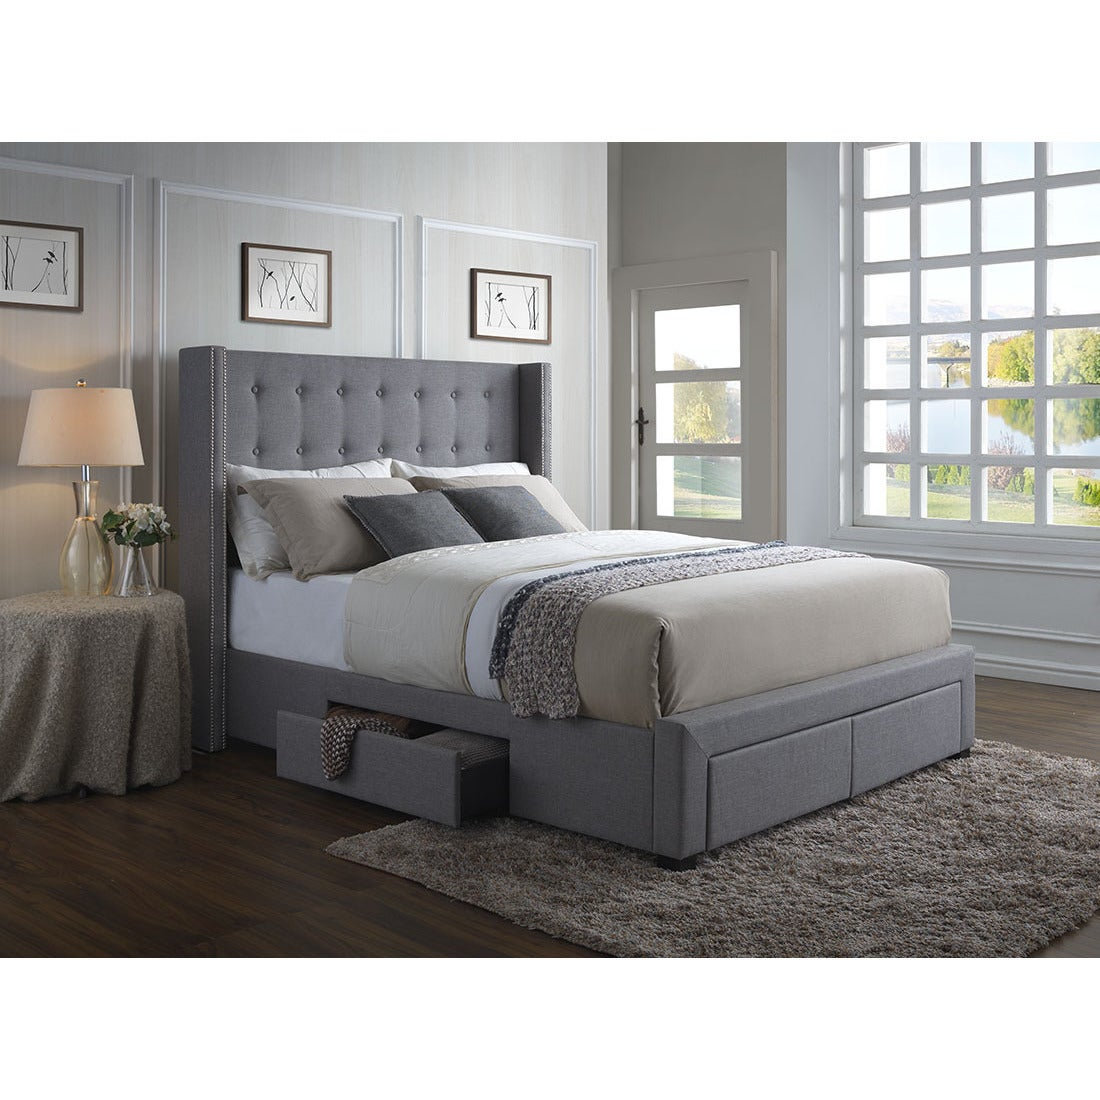 Strick bolton roth grey linen wingback storage bed